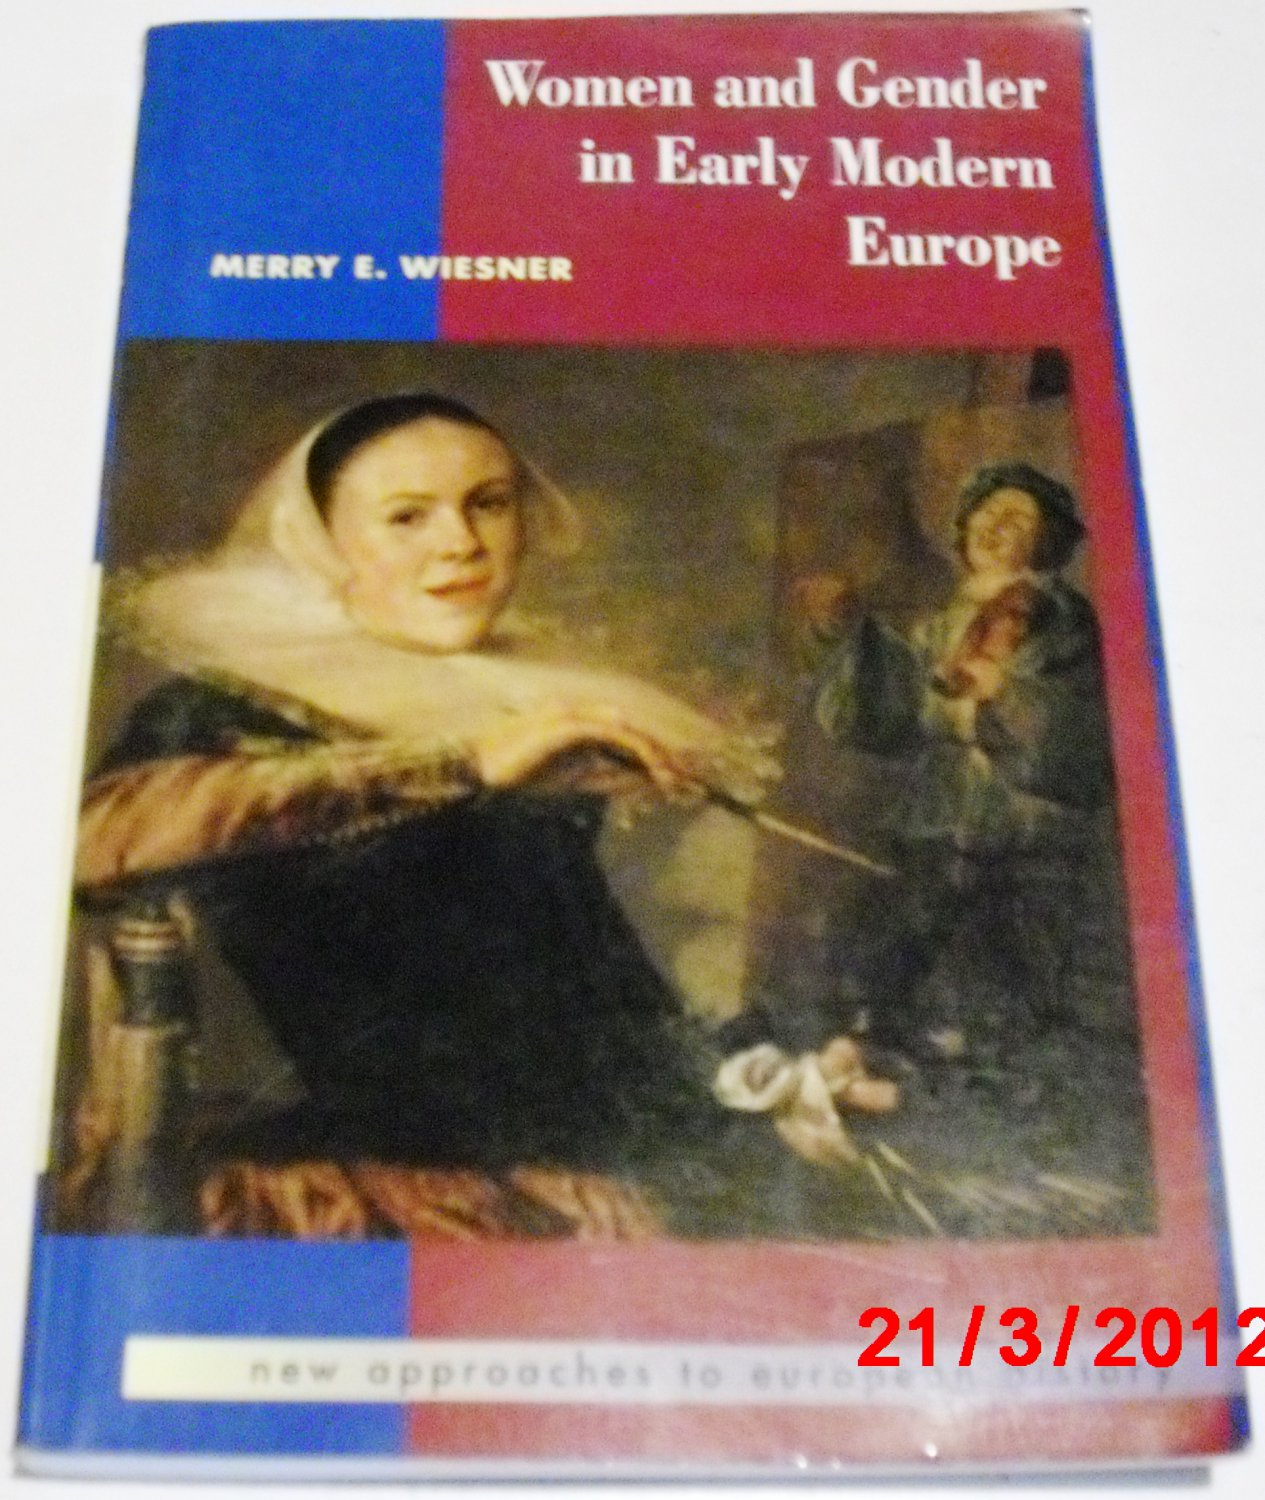 Women and Gender in Early Modern Europe by Merry E. Wiesner (Paperback, 1993)